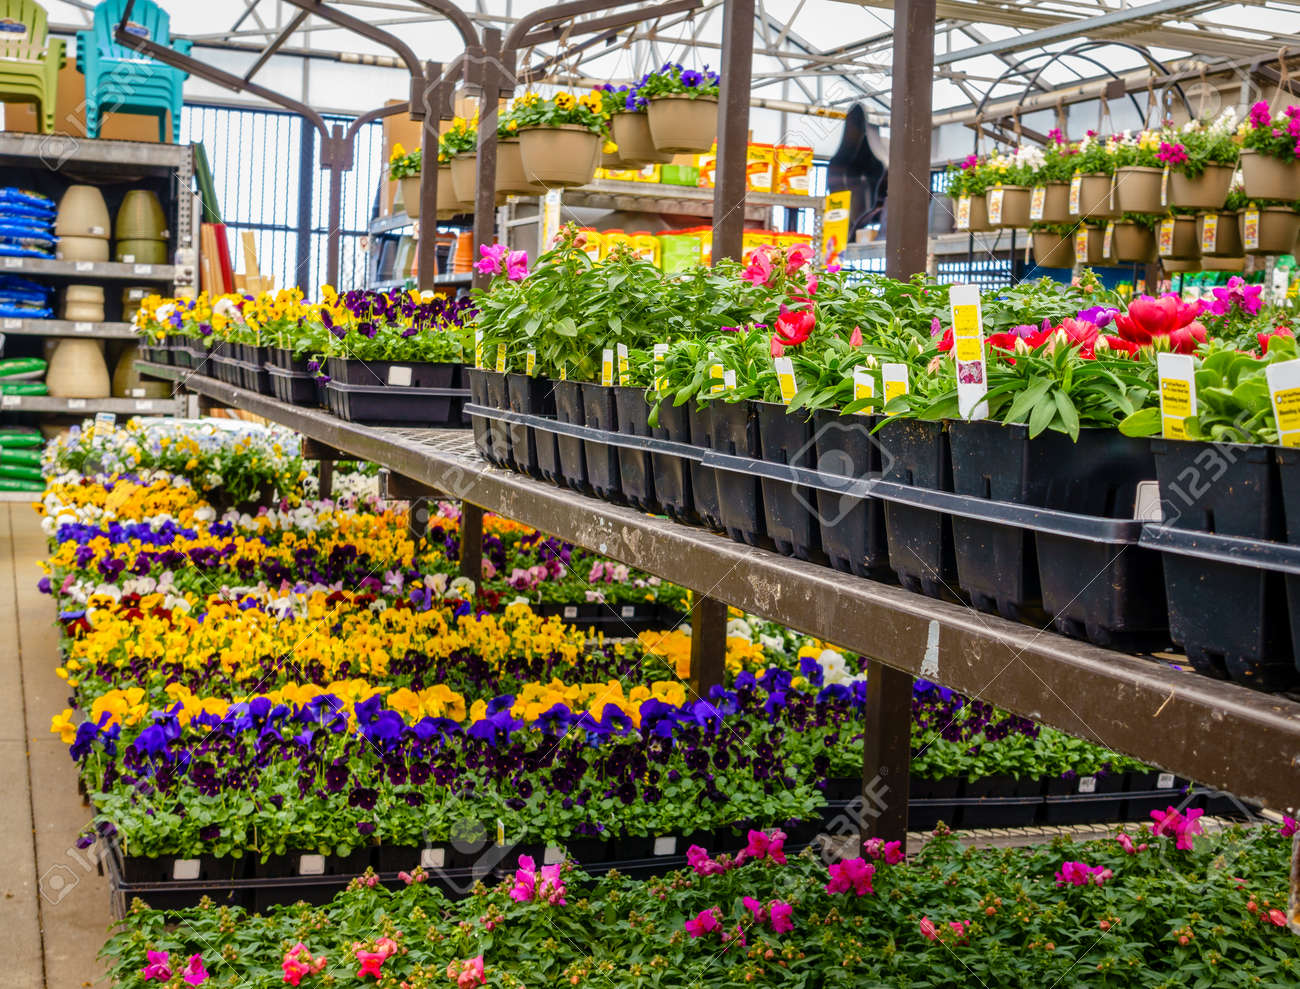 Potted Flowers And Plants On Display At A Home Improvement Store